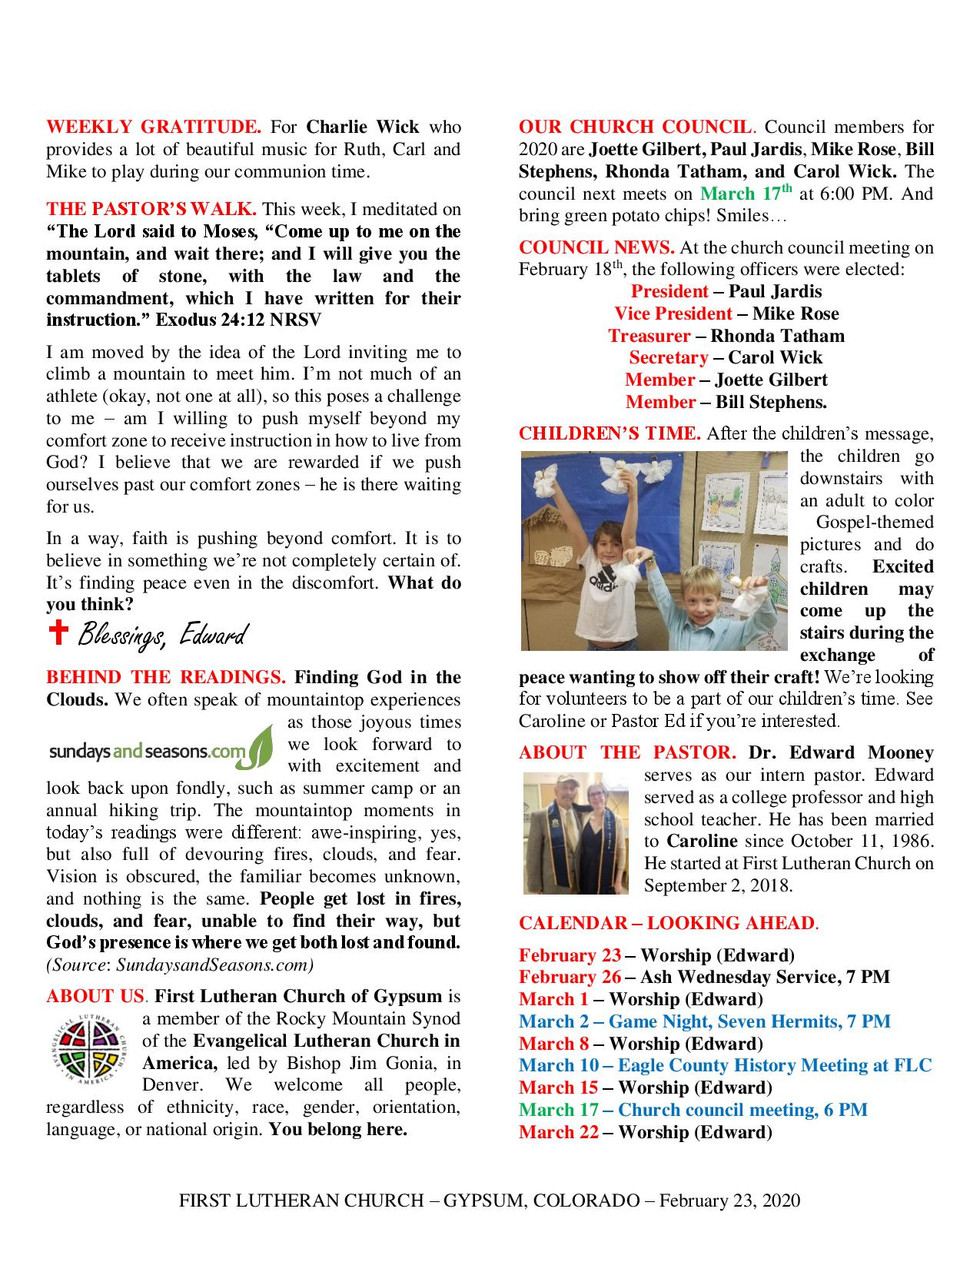 Newsletter, February 23, 2020, page 2